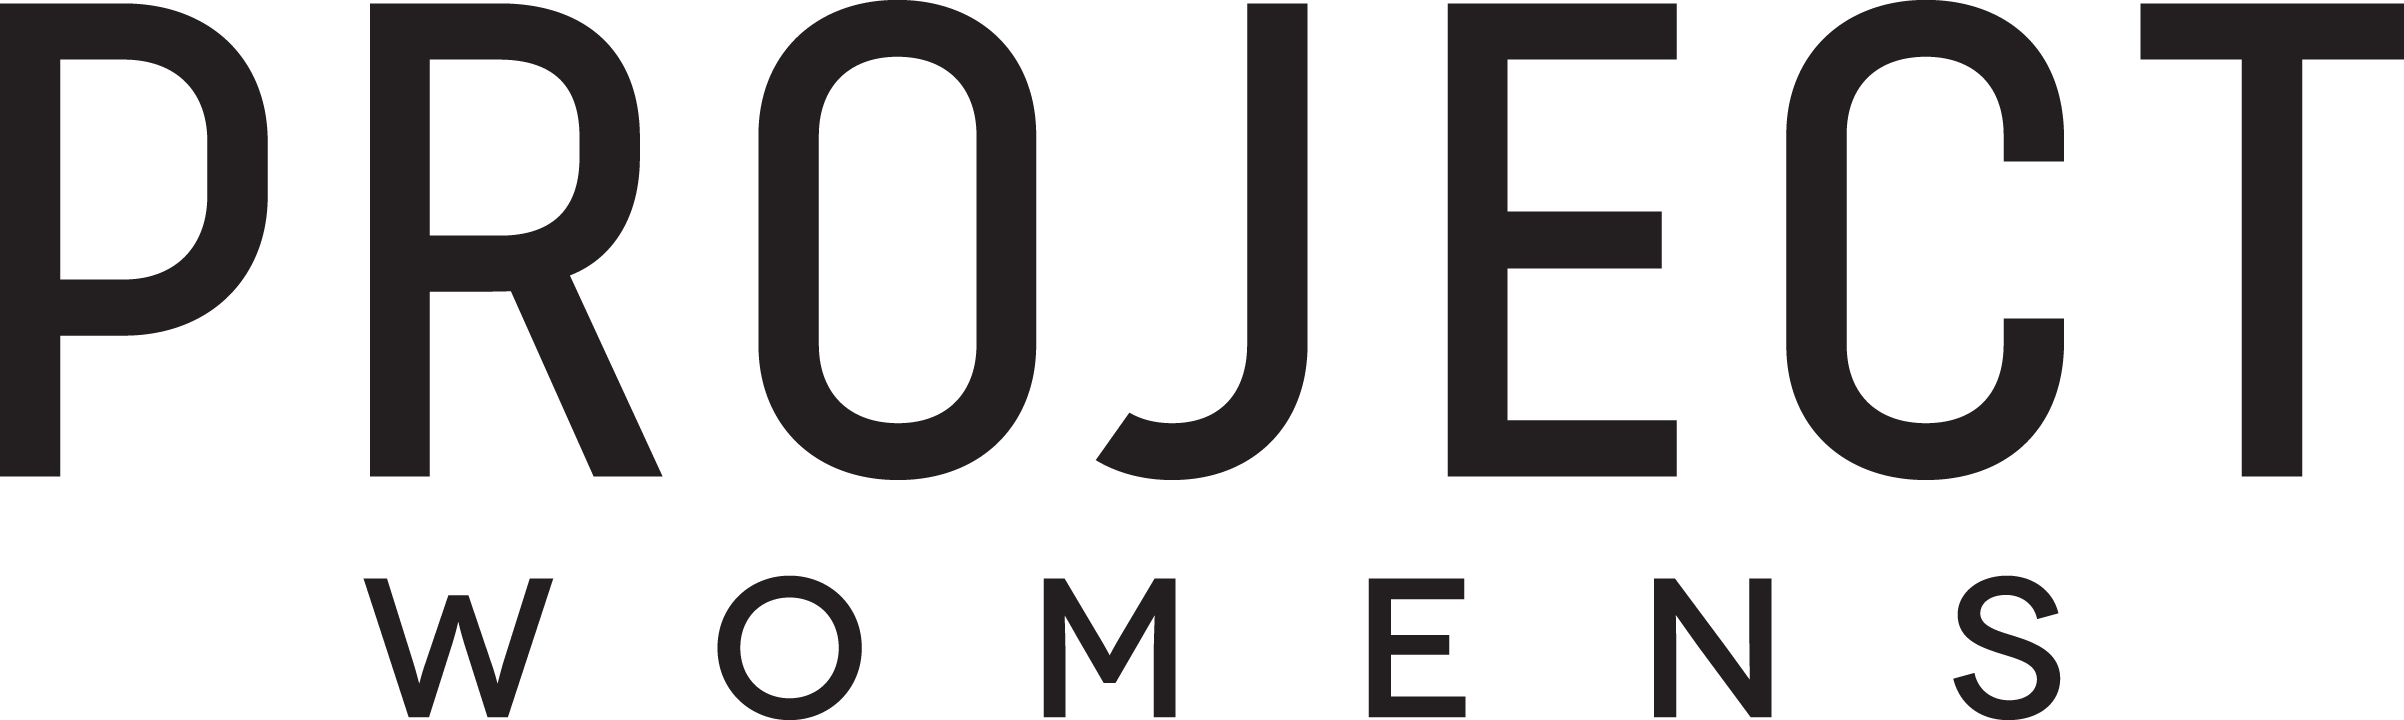 PROJECT-WOMENS-LOGO.png